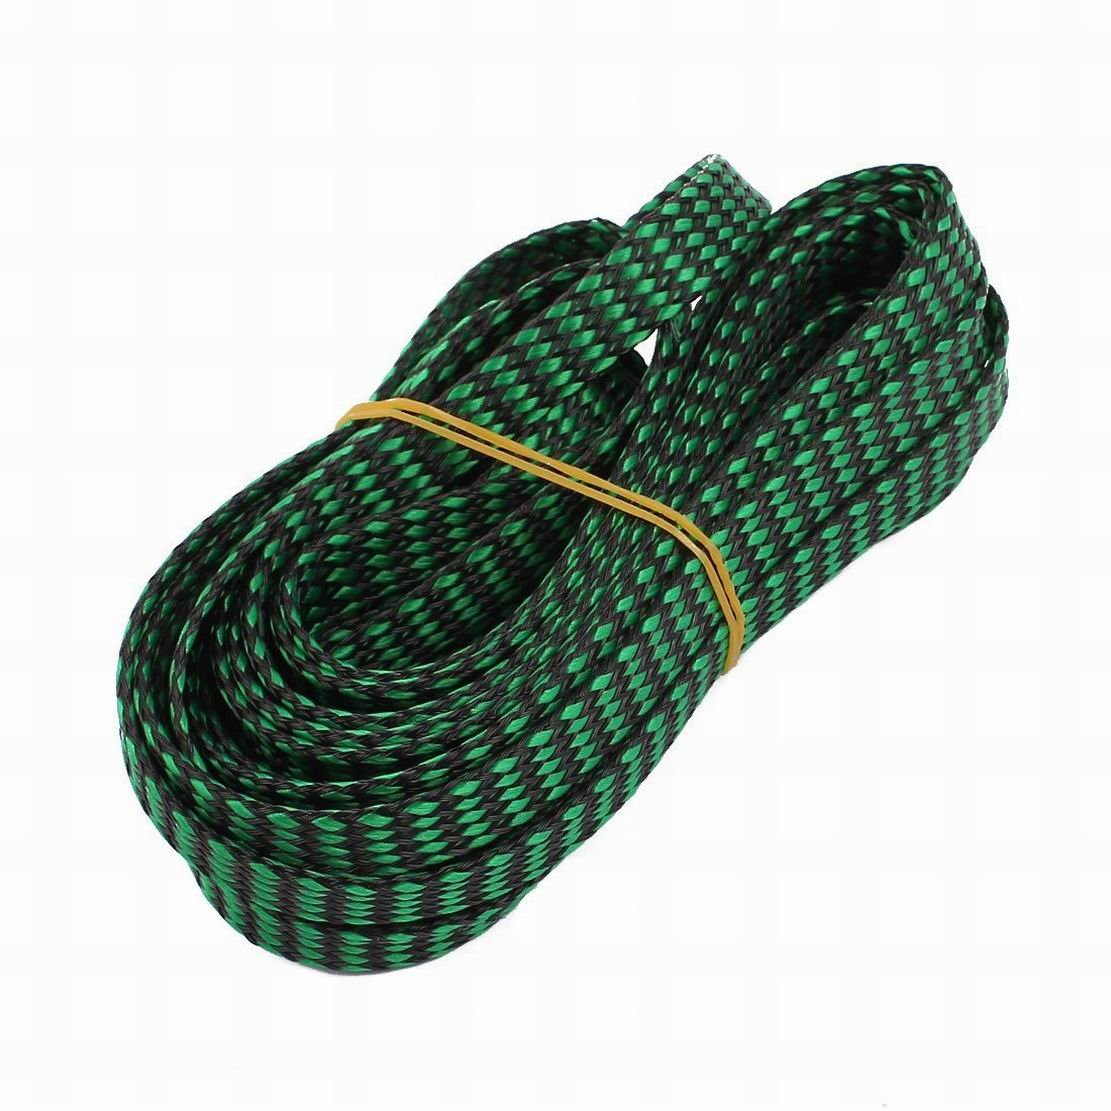 FemiaD 12mm PET Cable Wire Wrap Expandable Braided Sleeving Black Green 5M Length